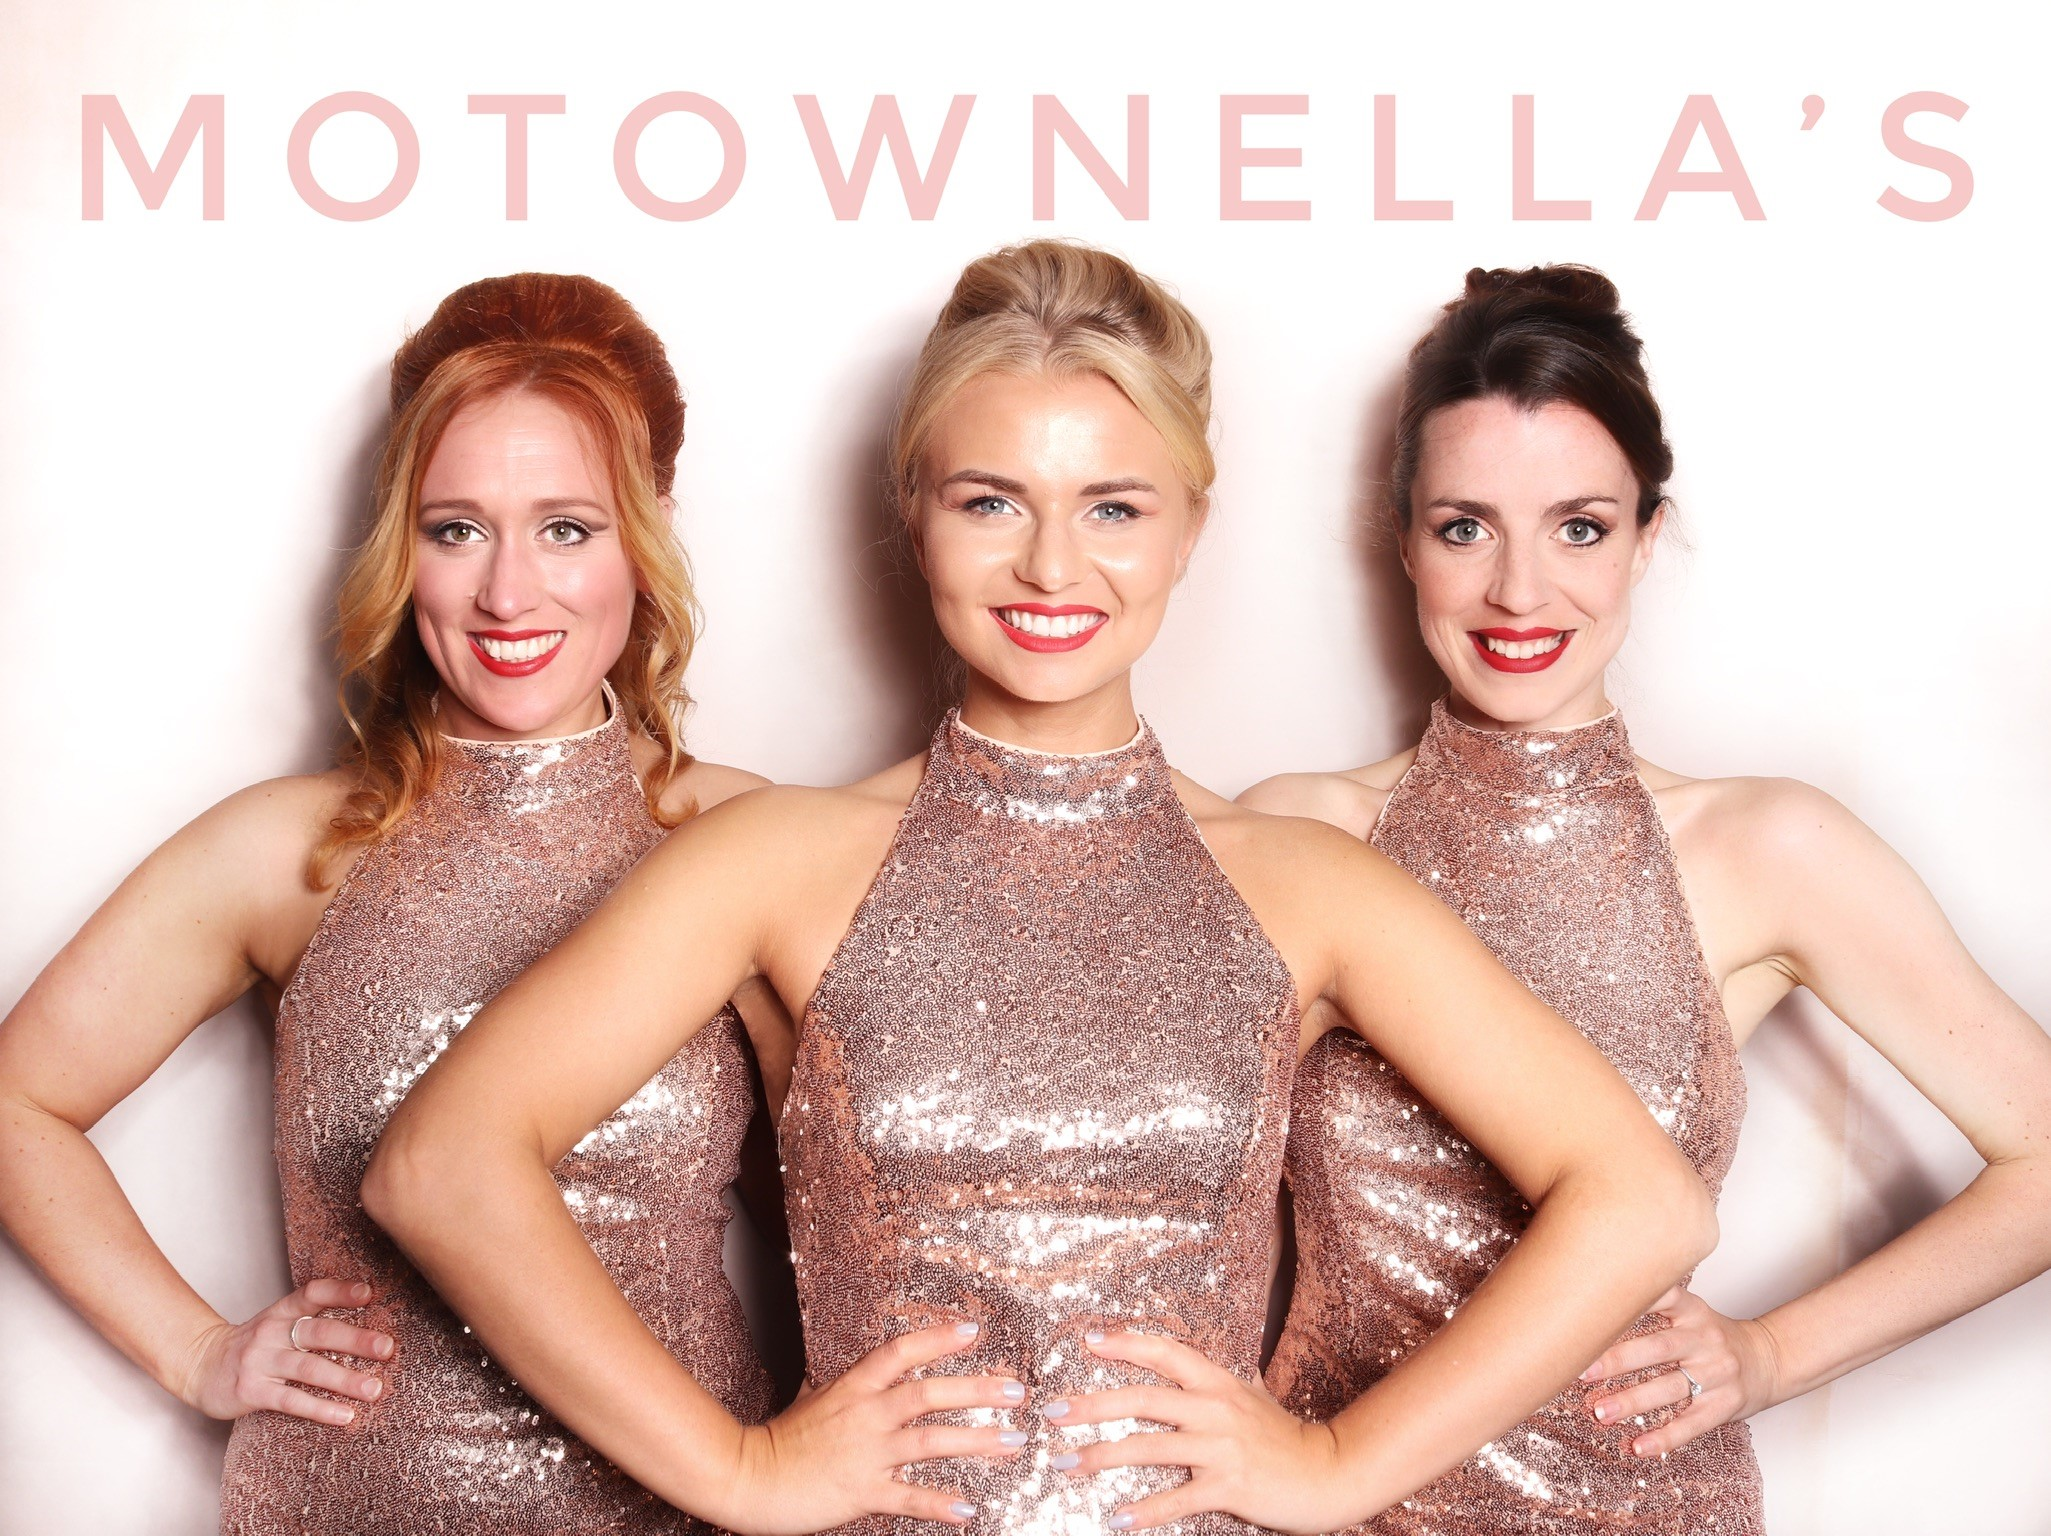 Motownella's - Soul and Motown Tribute Band